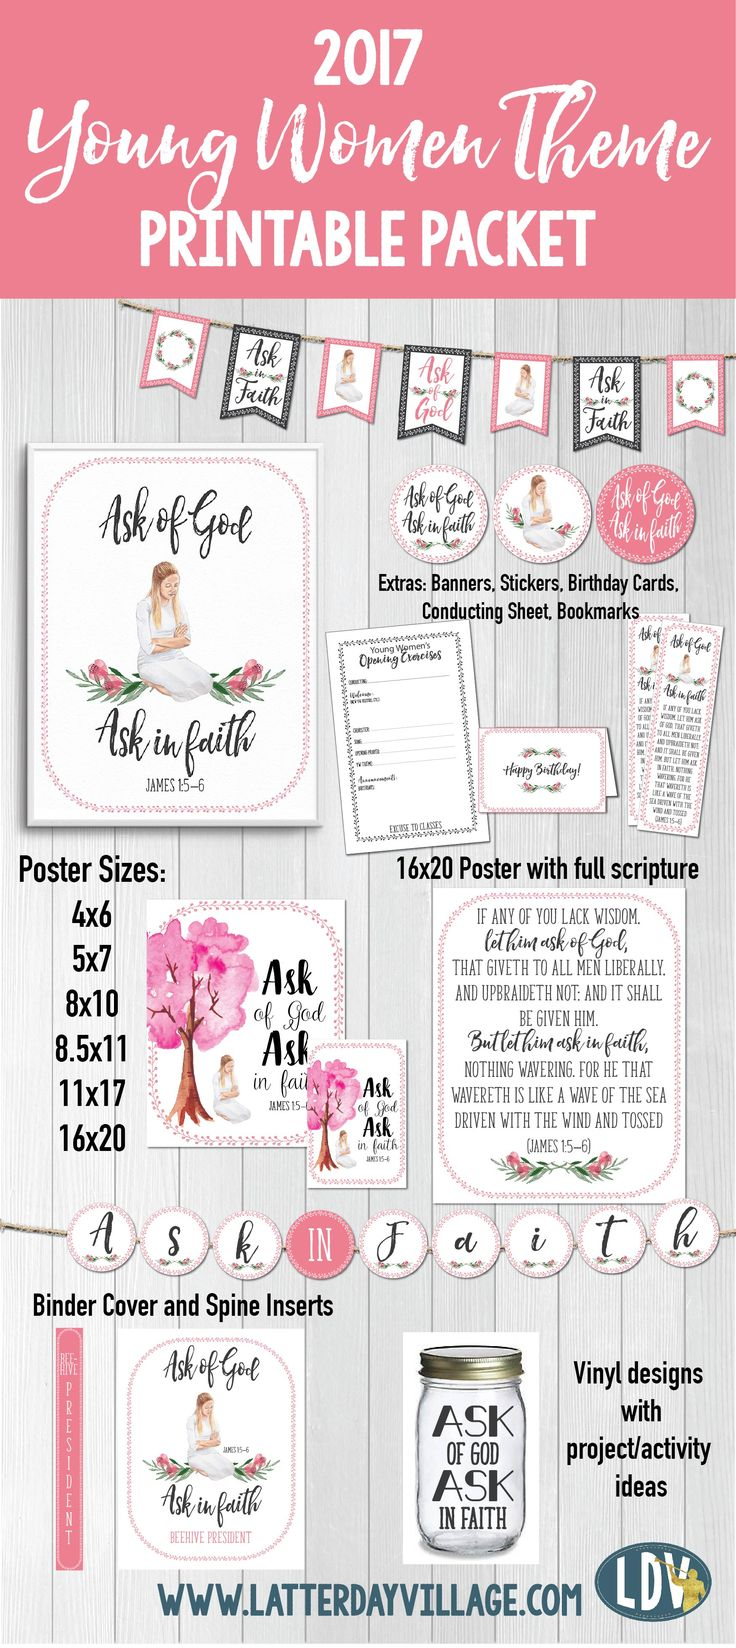 2017 Young Women Theme Printable Packets! Includes posters, bookmarks, banners, binder covers, vinyl designs, activity ideas, and more! www.LatterDayVillage.com